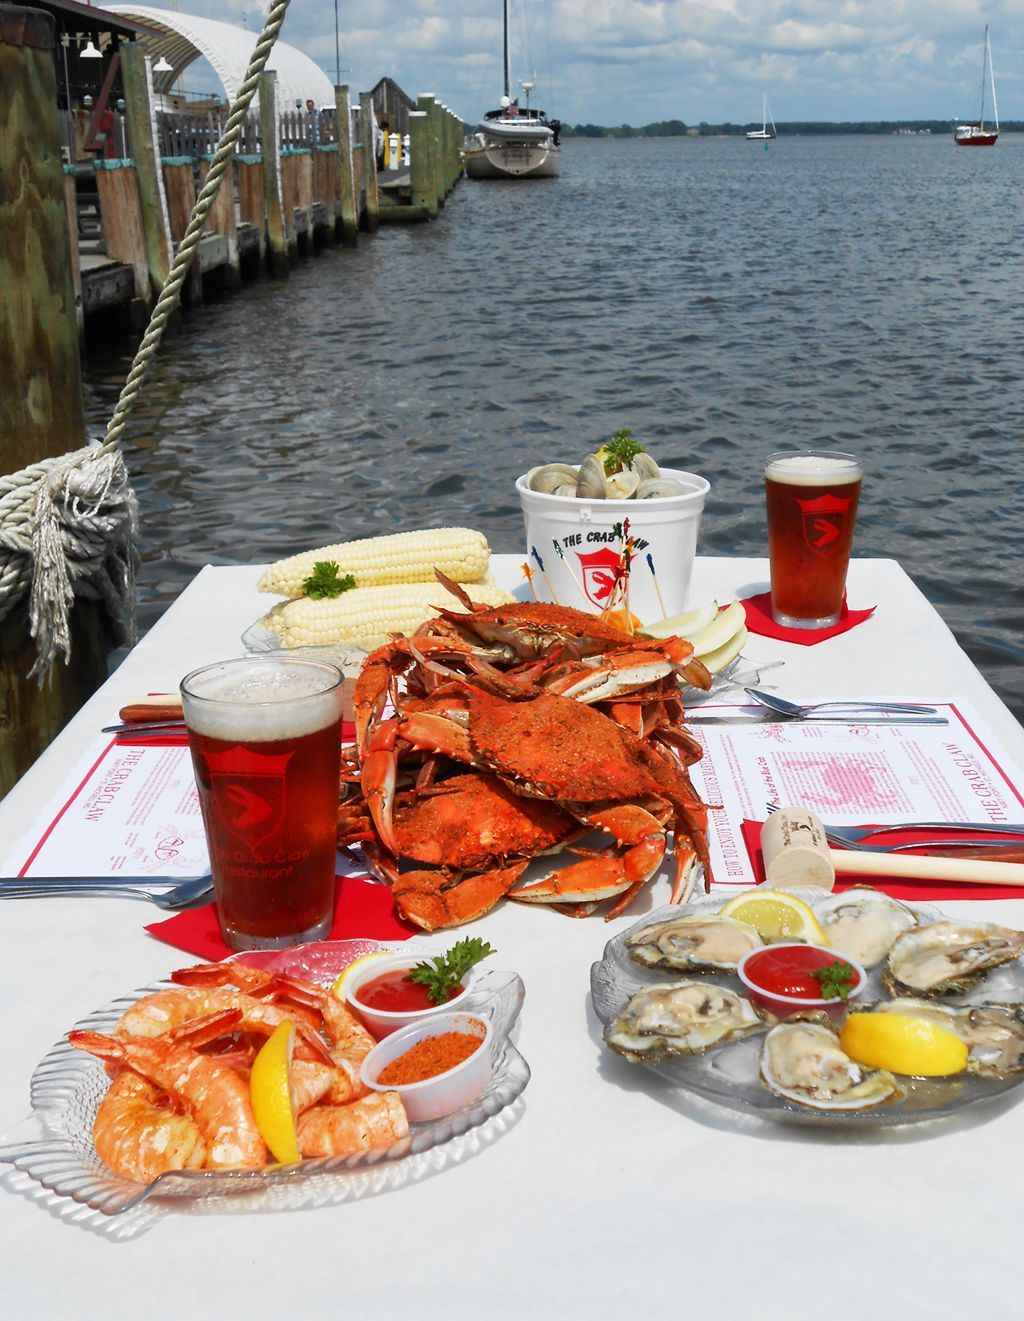 The 11 Best Crab Houses To Eat At Around The Chesapeake Bay Crab House Best Crabs Virginia Beach Vacation